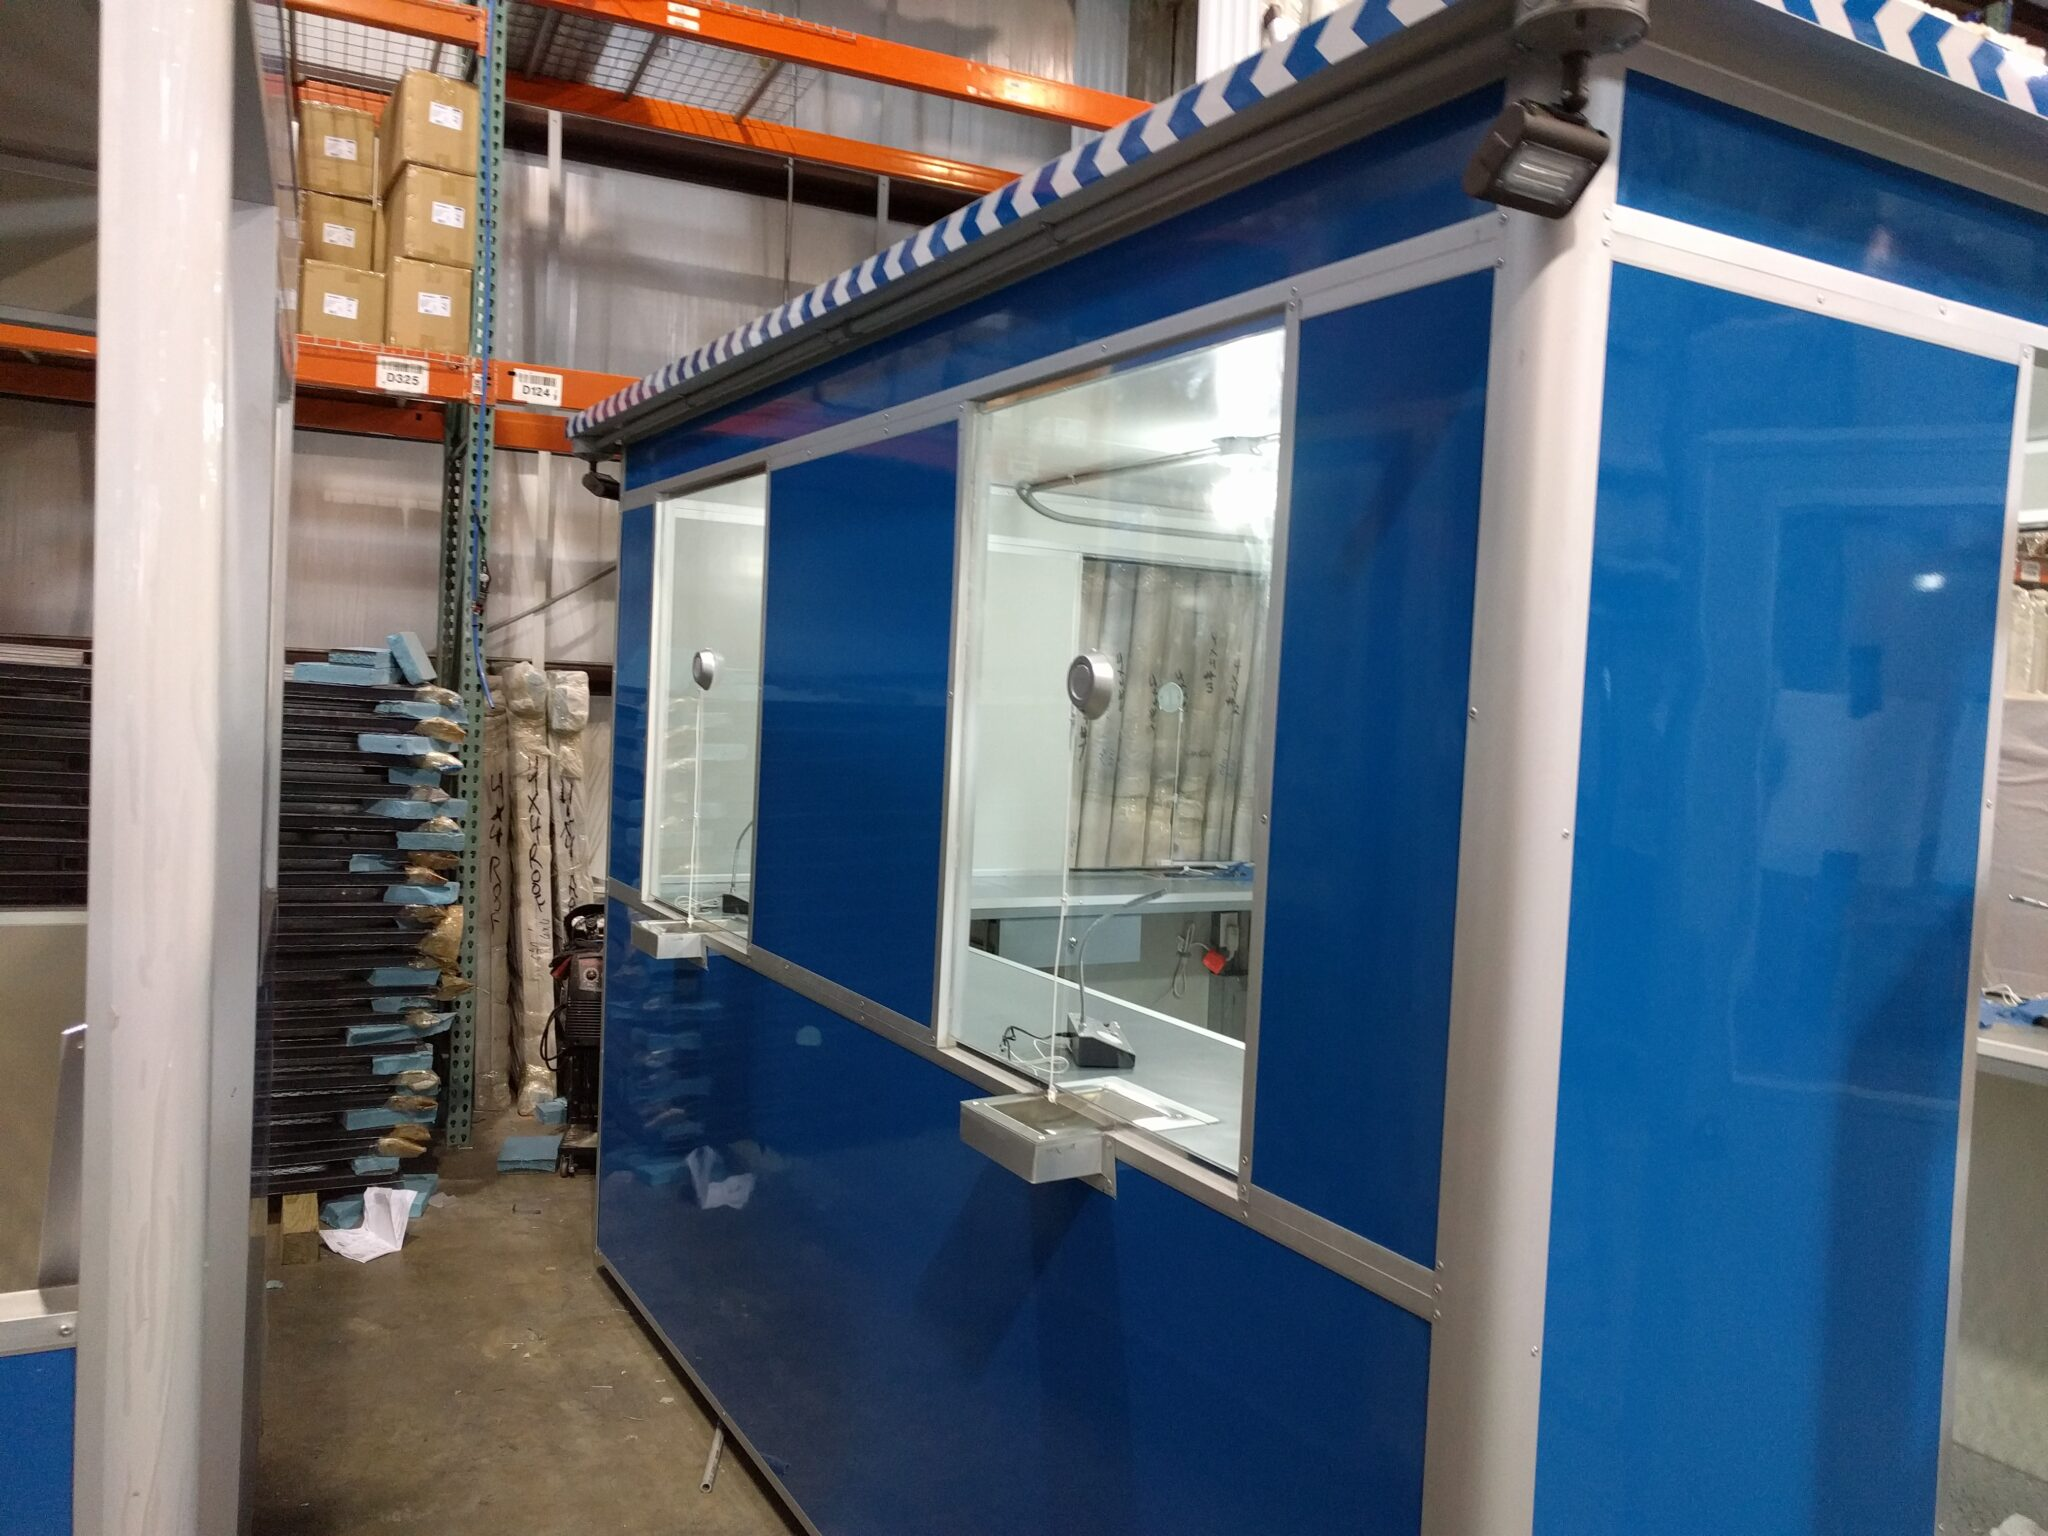 8x10 Booth with Add-On Features Ticket Transaction Windows, Speakers, Outside Spotlights, and Sliding Windows